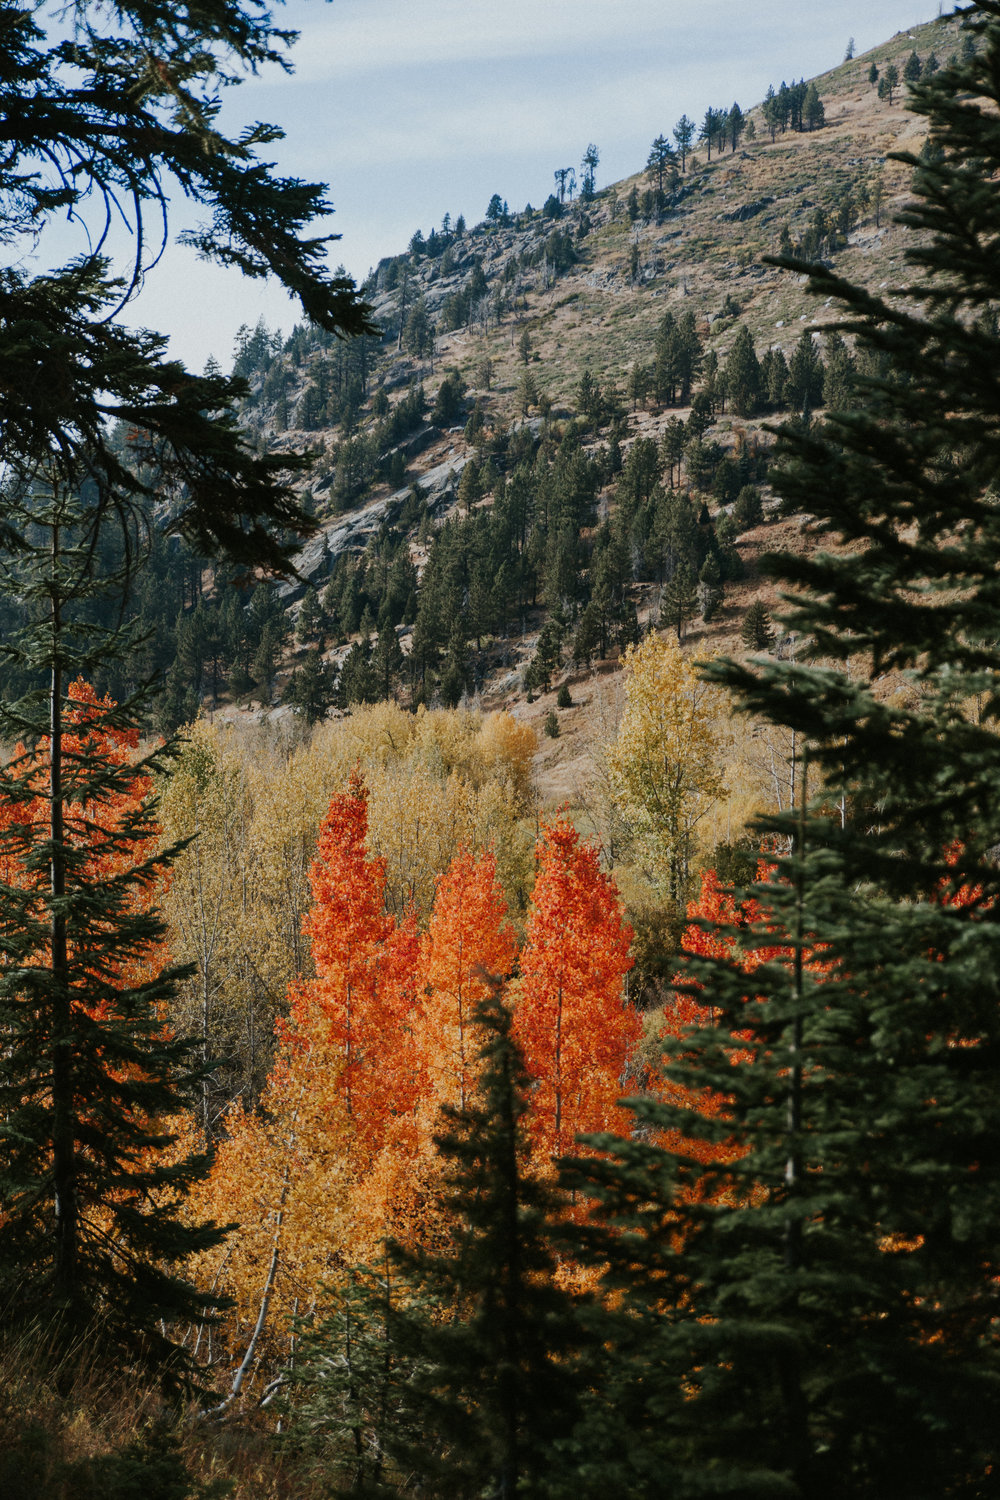 Mineral King was the most magnificent colors when we visited in the fall.  We couldn't believe our eyes and that we were seeing bright red leaves in the Sierras!  The trees looked as if they were on fire, sprinkling the valley with pops of color.